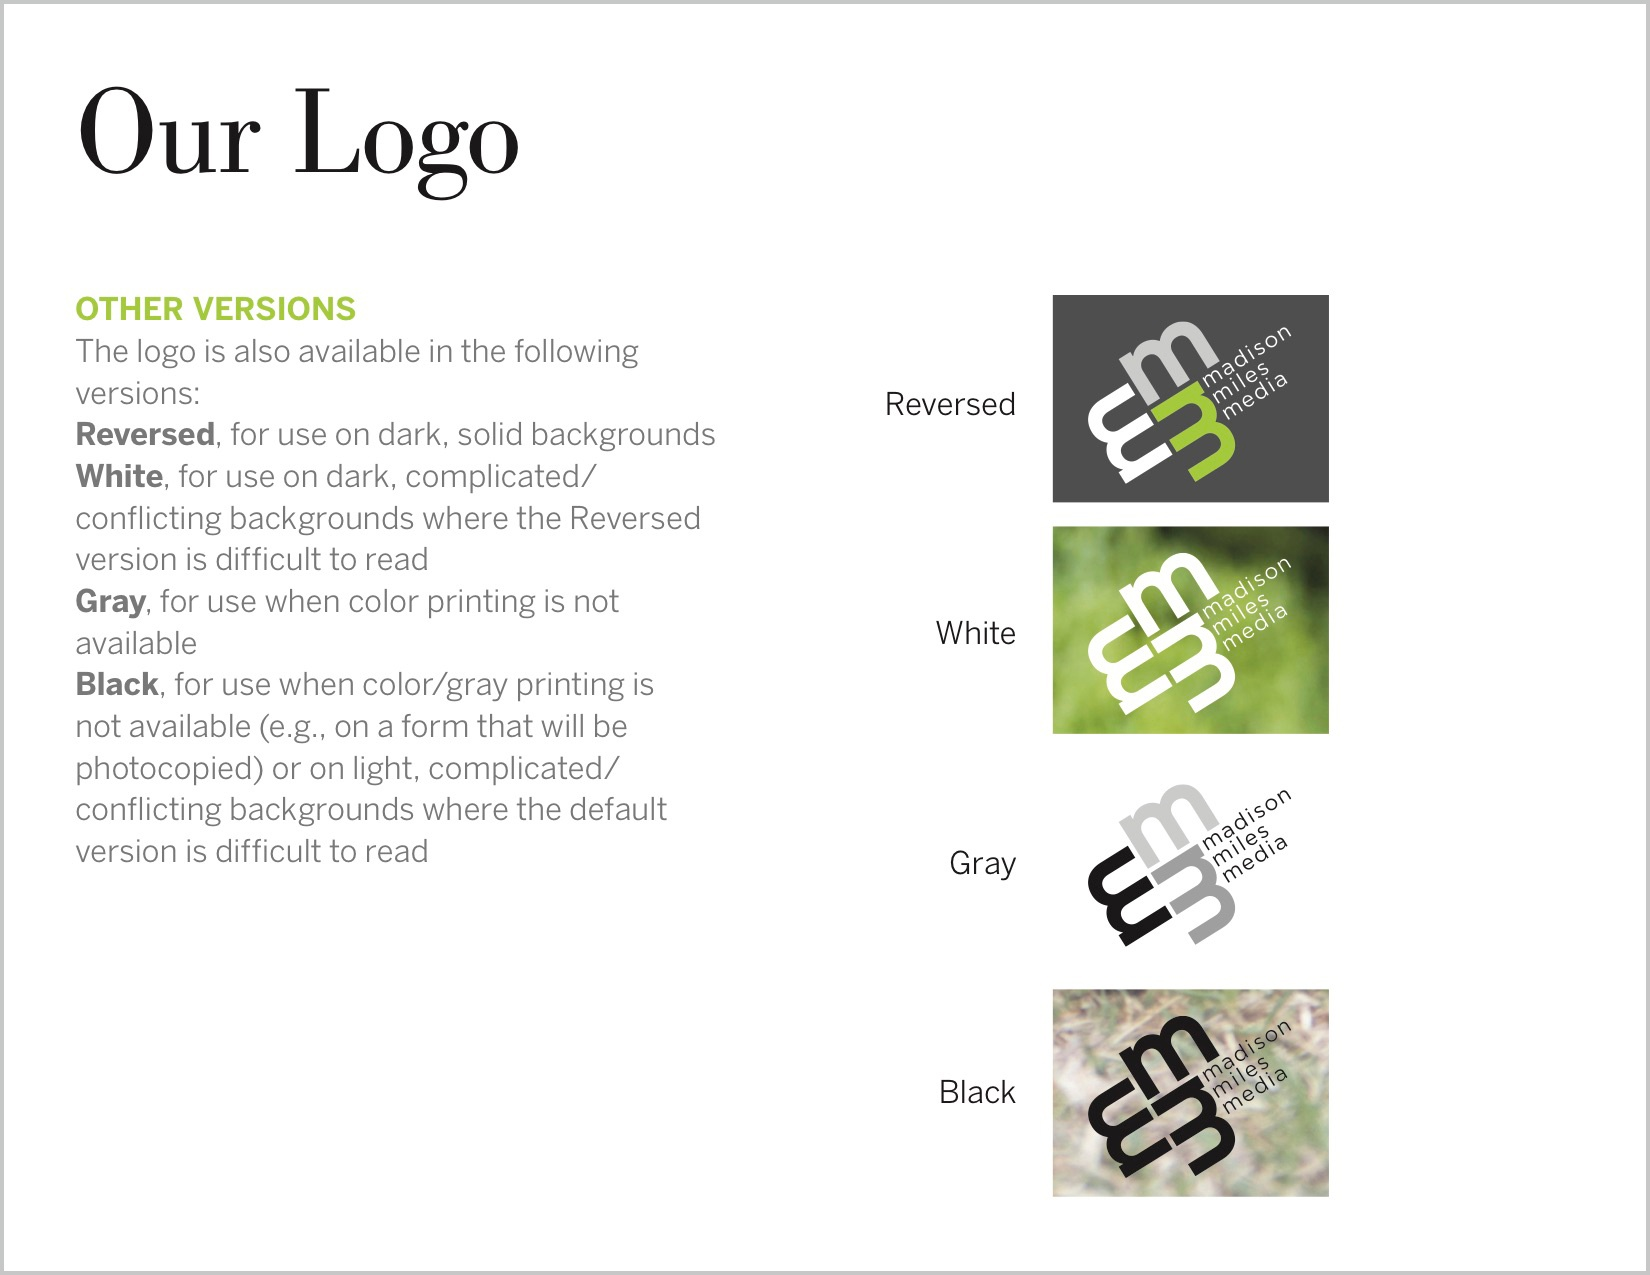 Defining how the brand logo can be displayed.